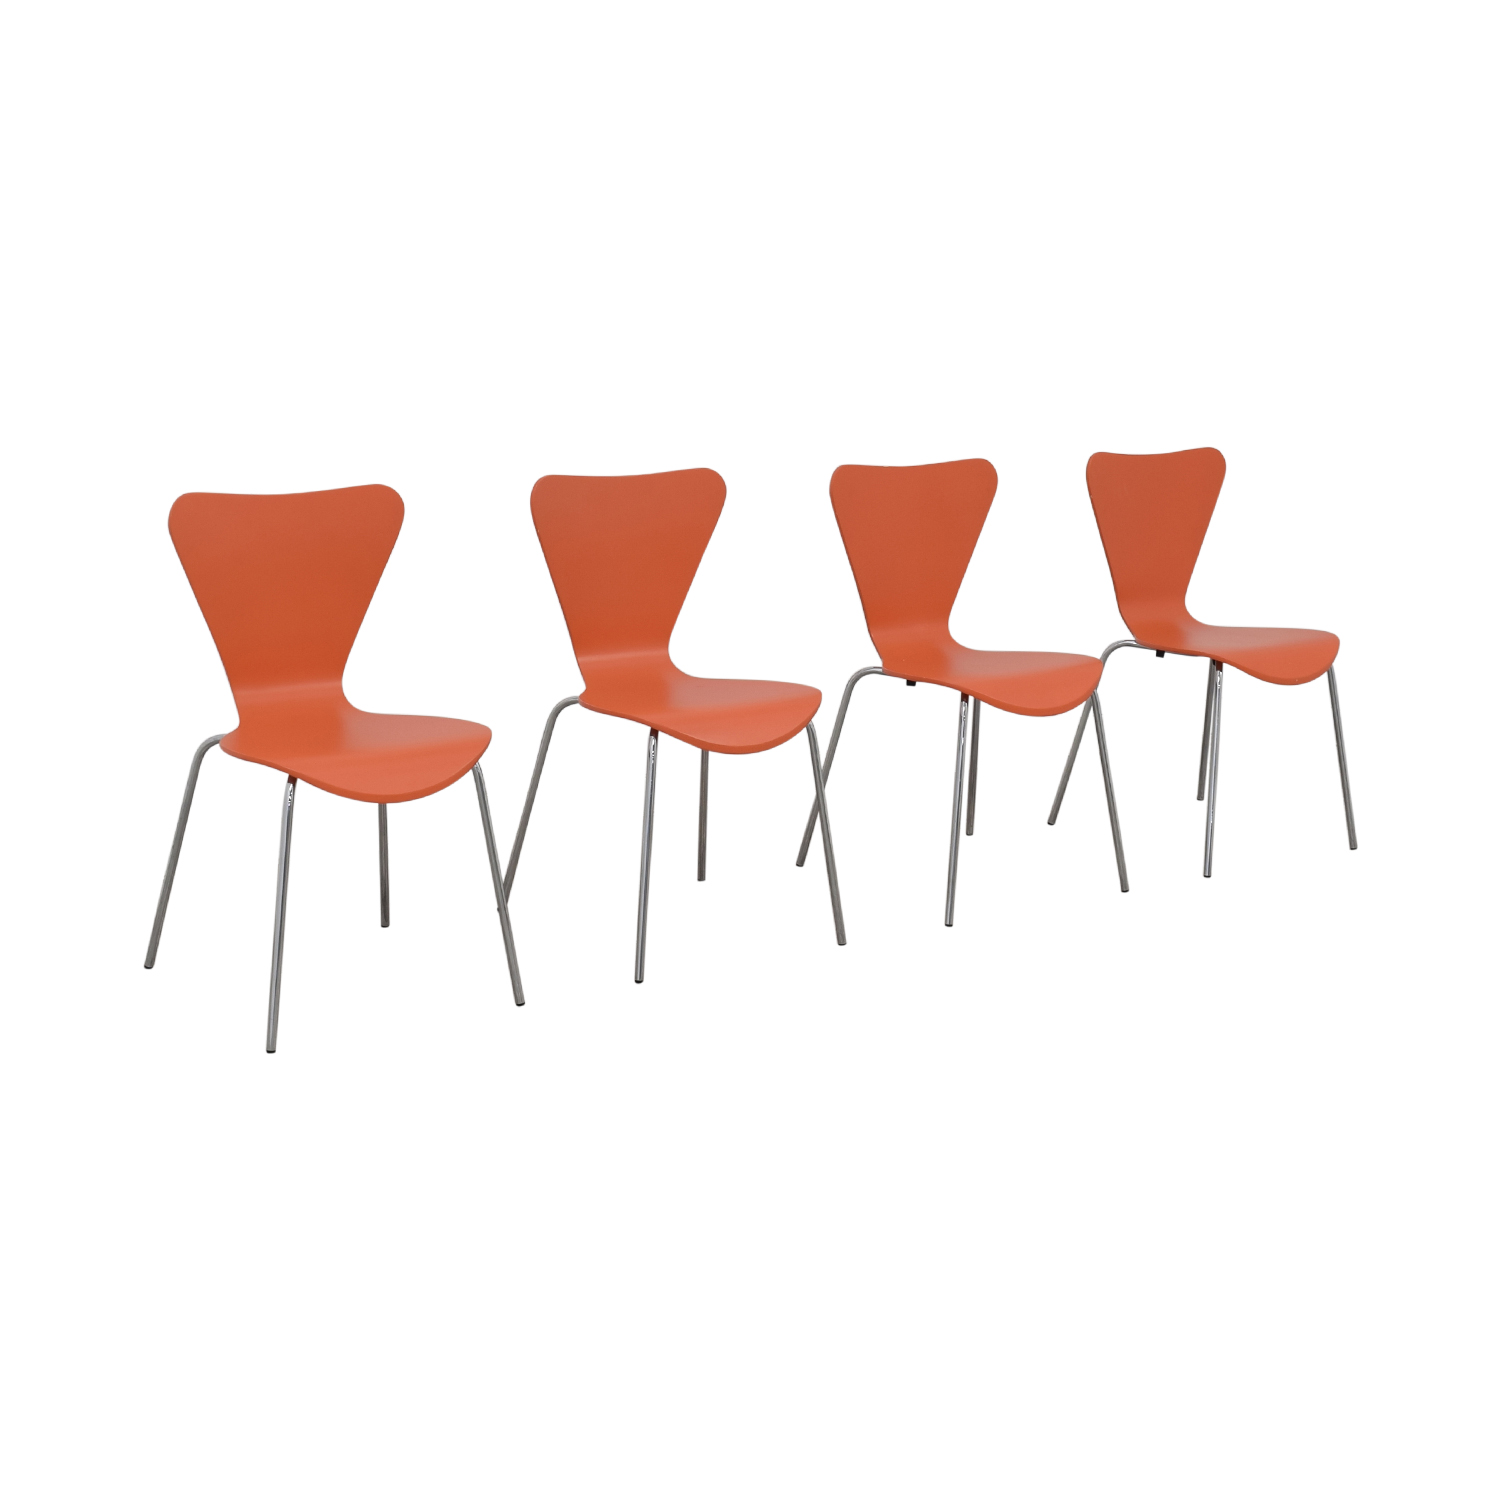 Room & Board Room & Board Orange Chairs coupon